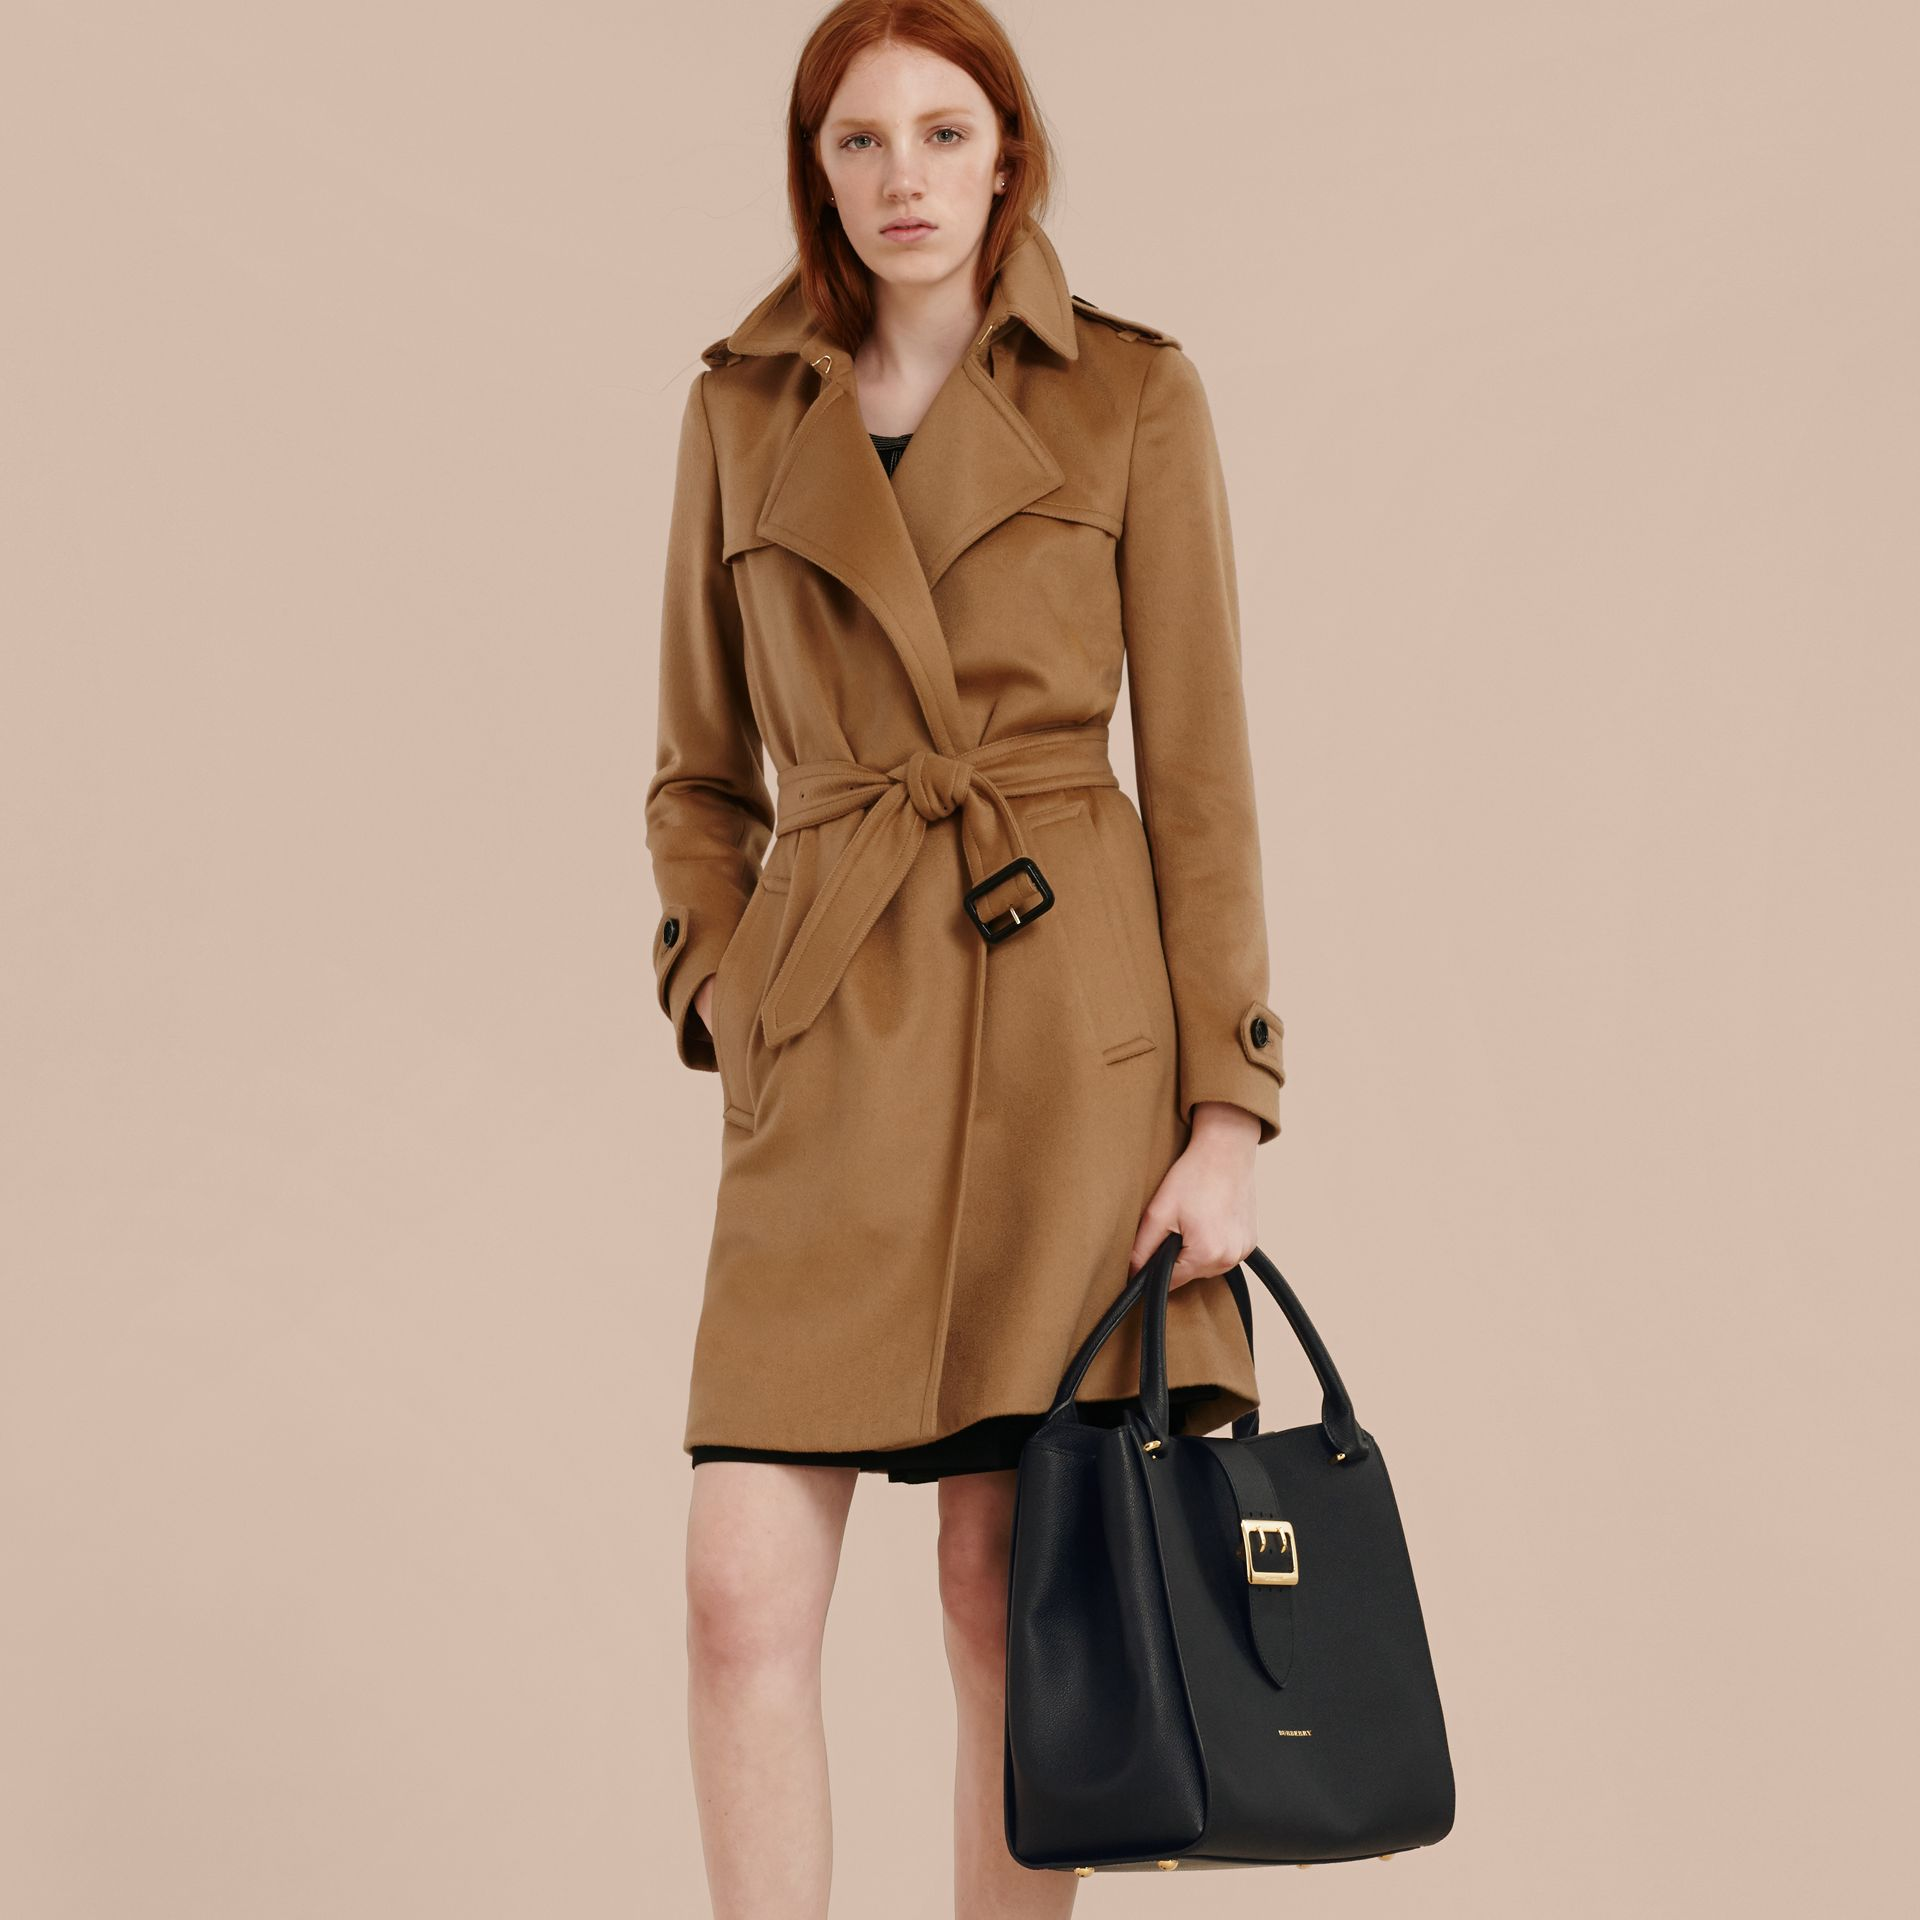 Borsa tote The Buckle grande in pelle a grana (Nero) - Donna | Burberry - immagine della galleria 4